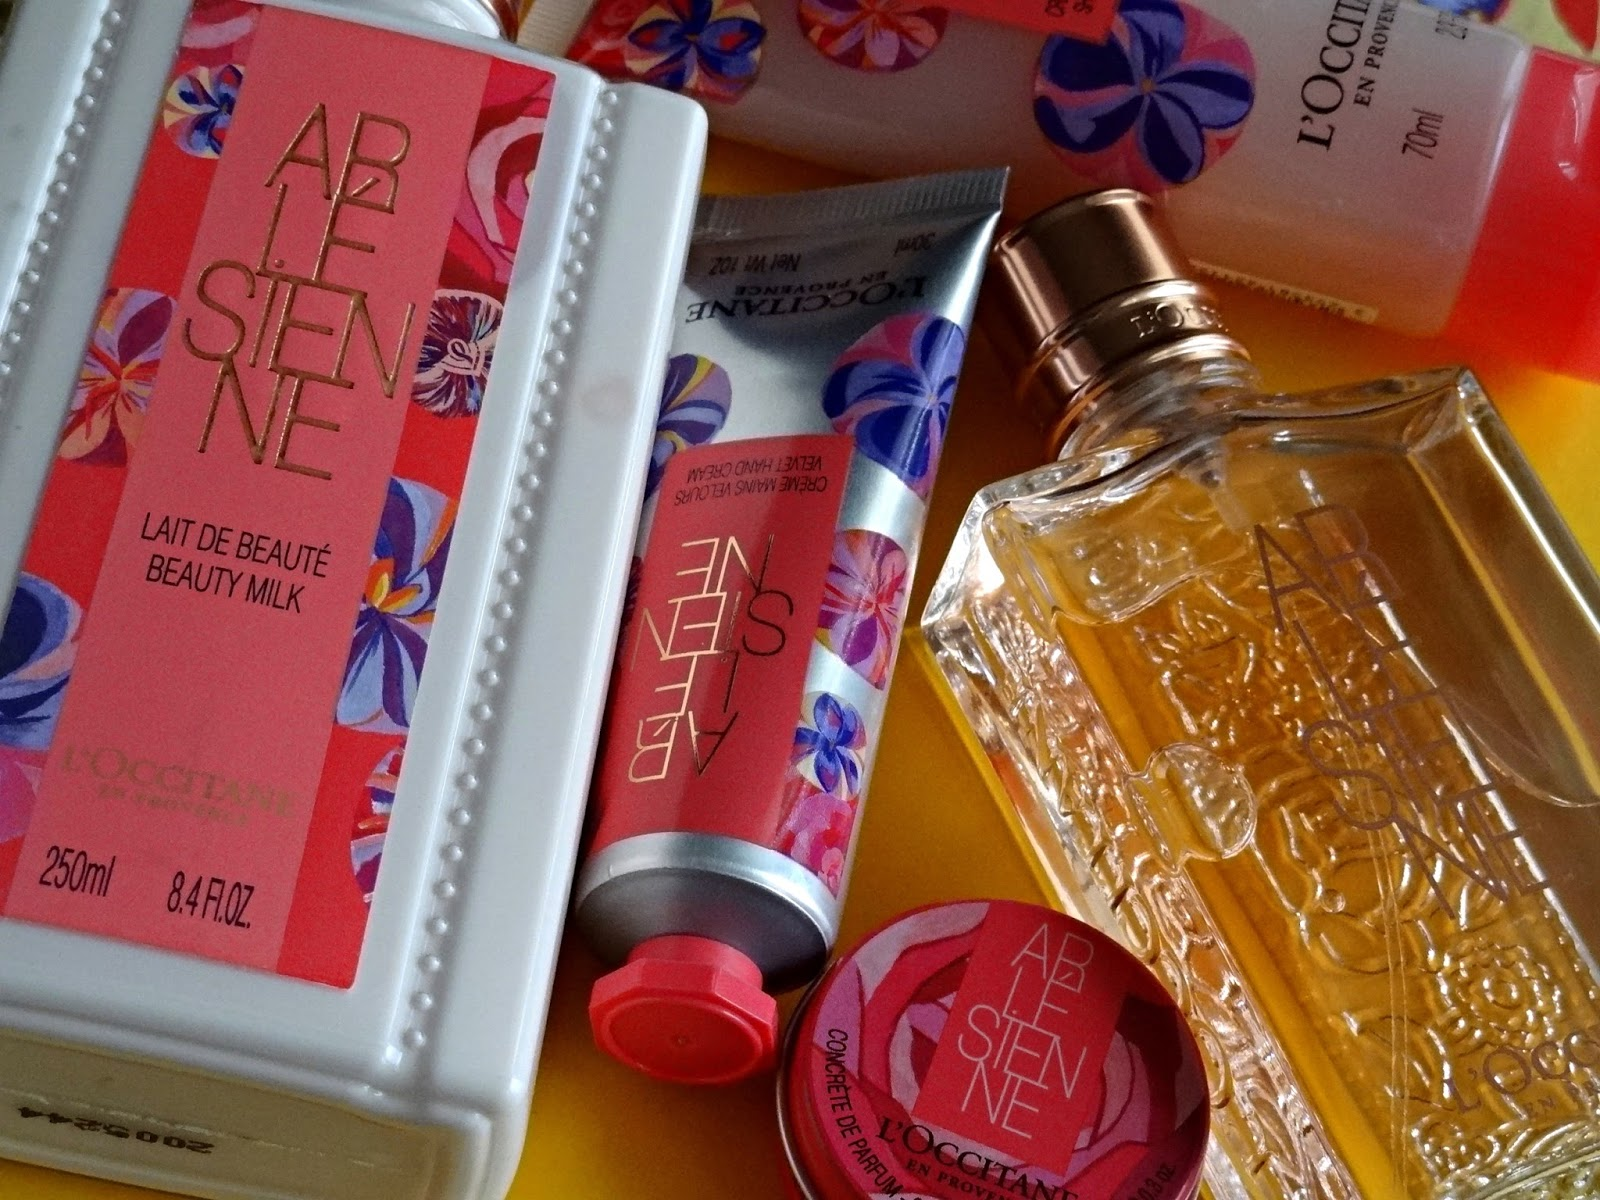 L'occitane Arlesienne Holiday 2014 Collection